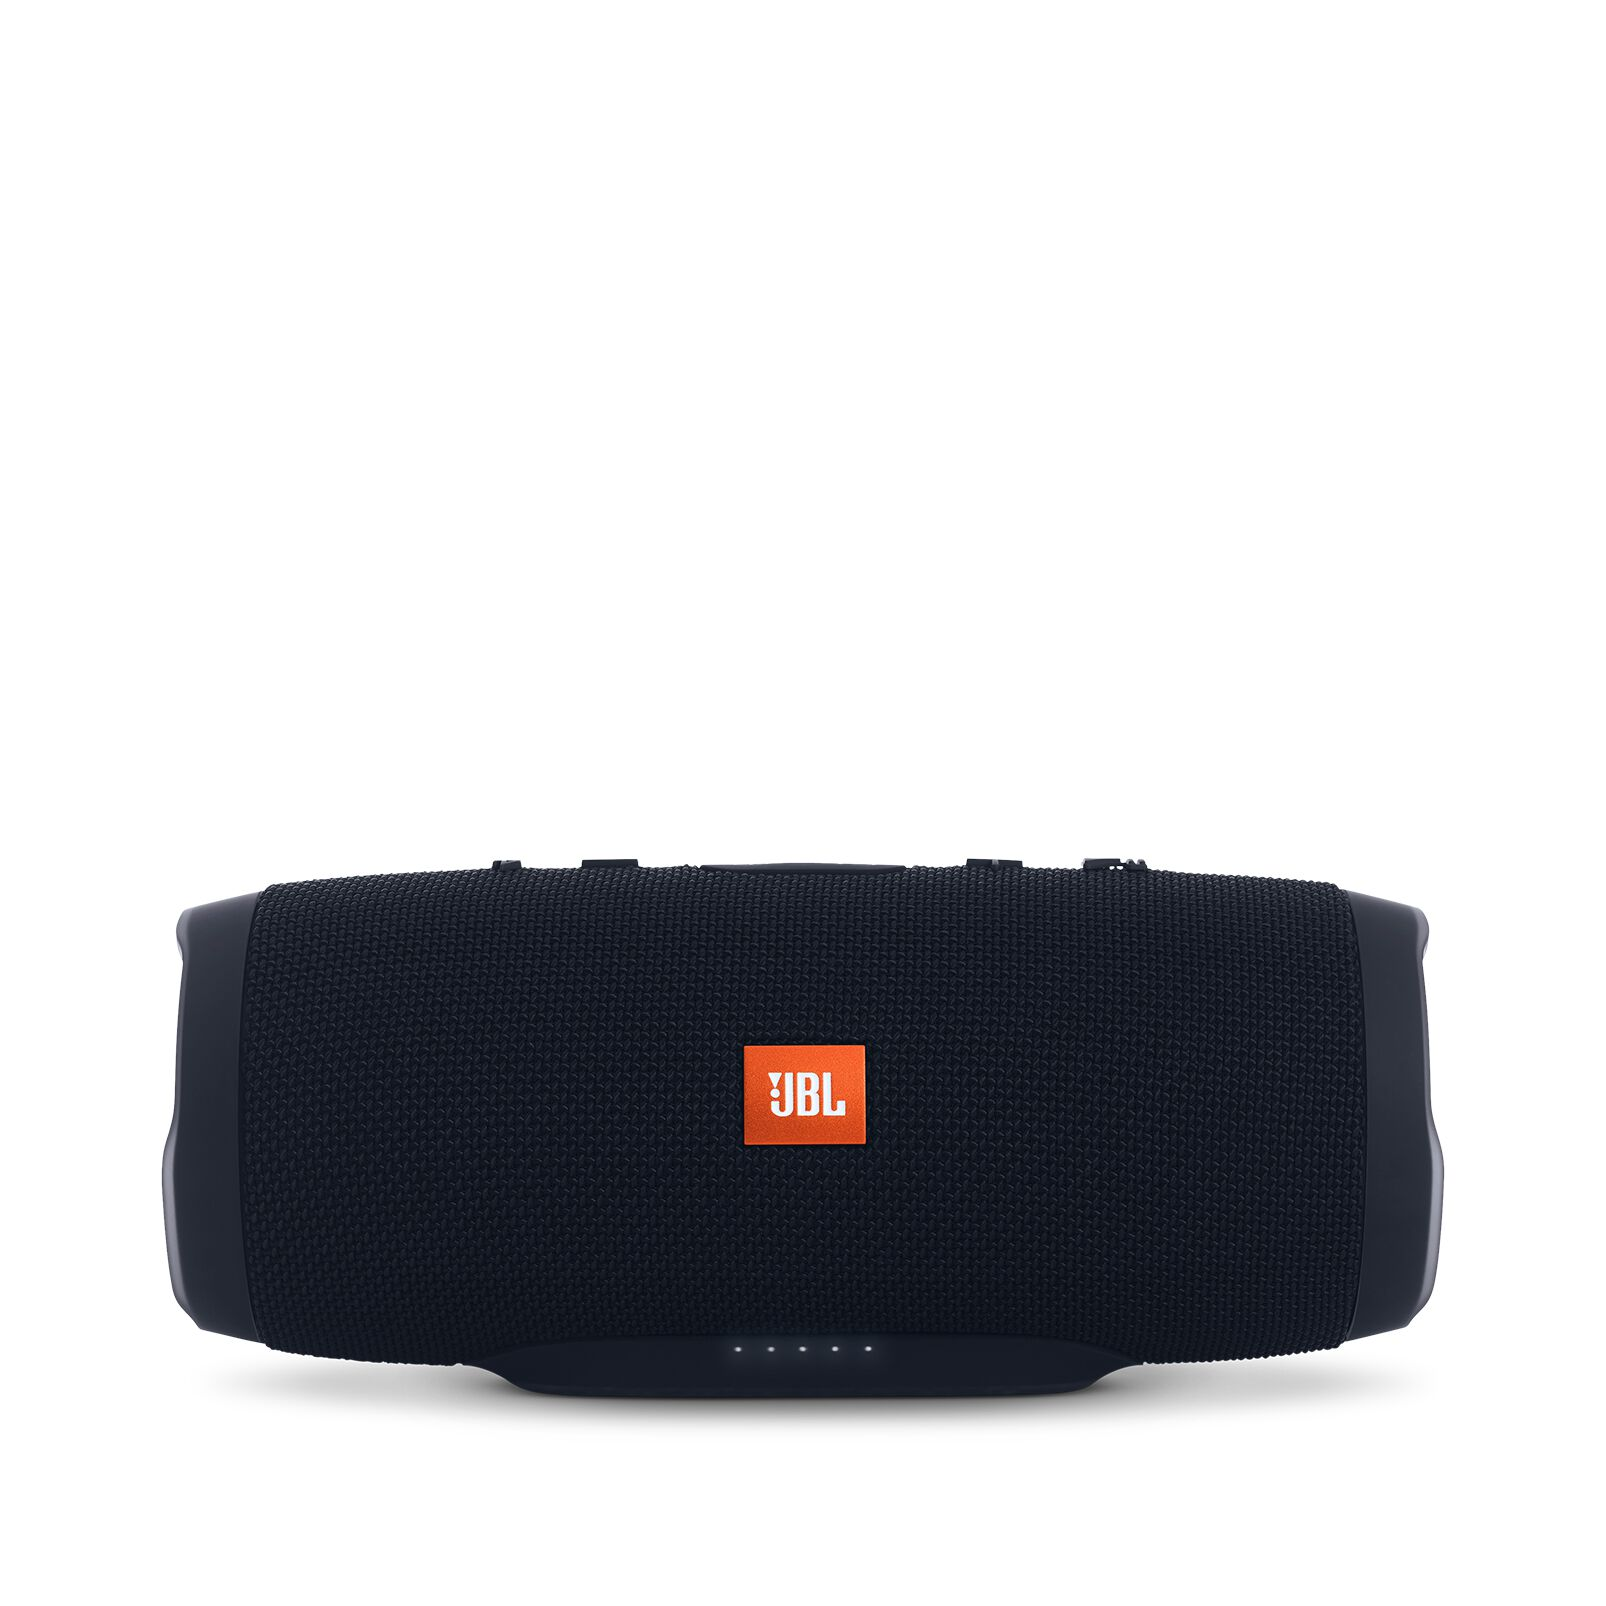 Jbl Charge 3 Jblcharge3blkam Waterproof Portable Bluetooth Speaker Review Lg Bluetooth Fh2 Bluetooth Enabled Keyboard And Mouse Jabra Bluetooth Volume Control: JBL Charge 3 New Waterproof Portable Bluetooth Speaker